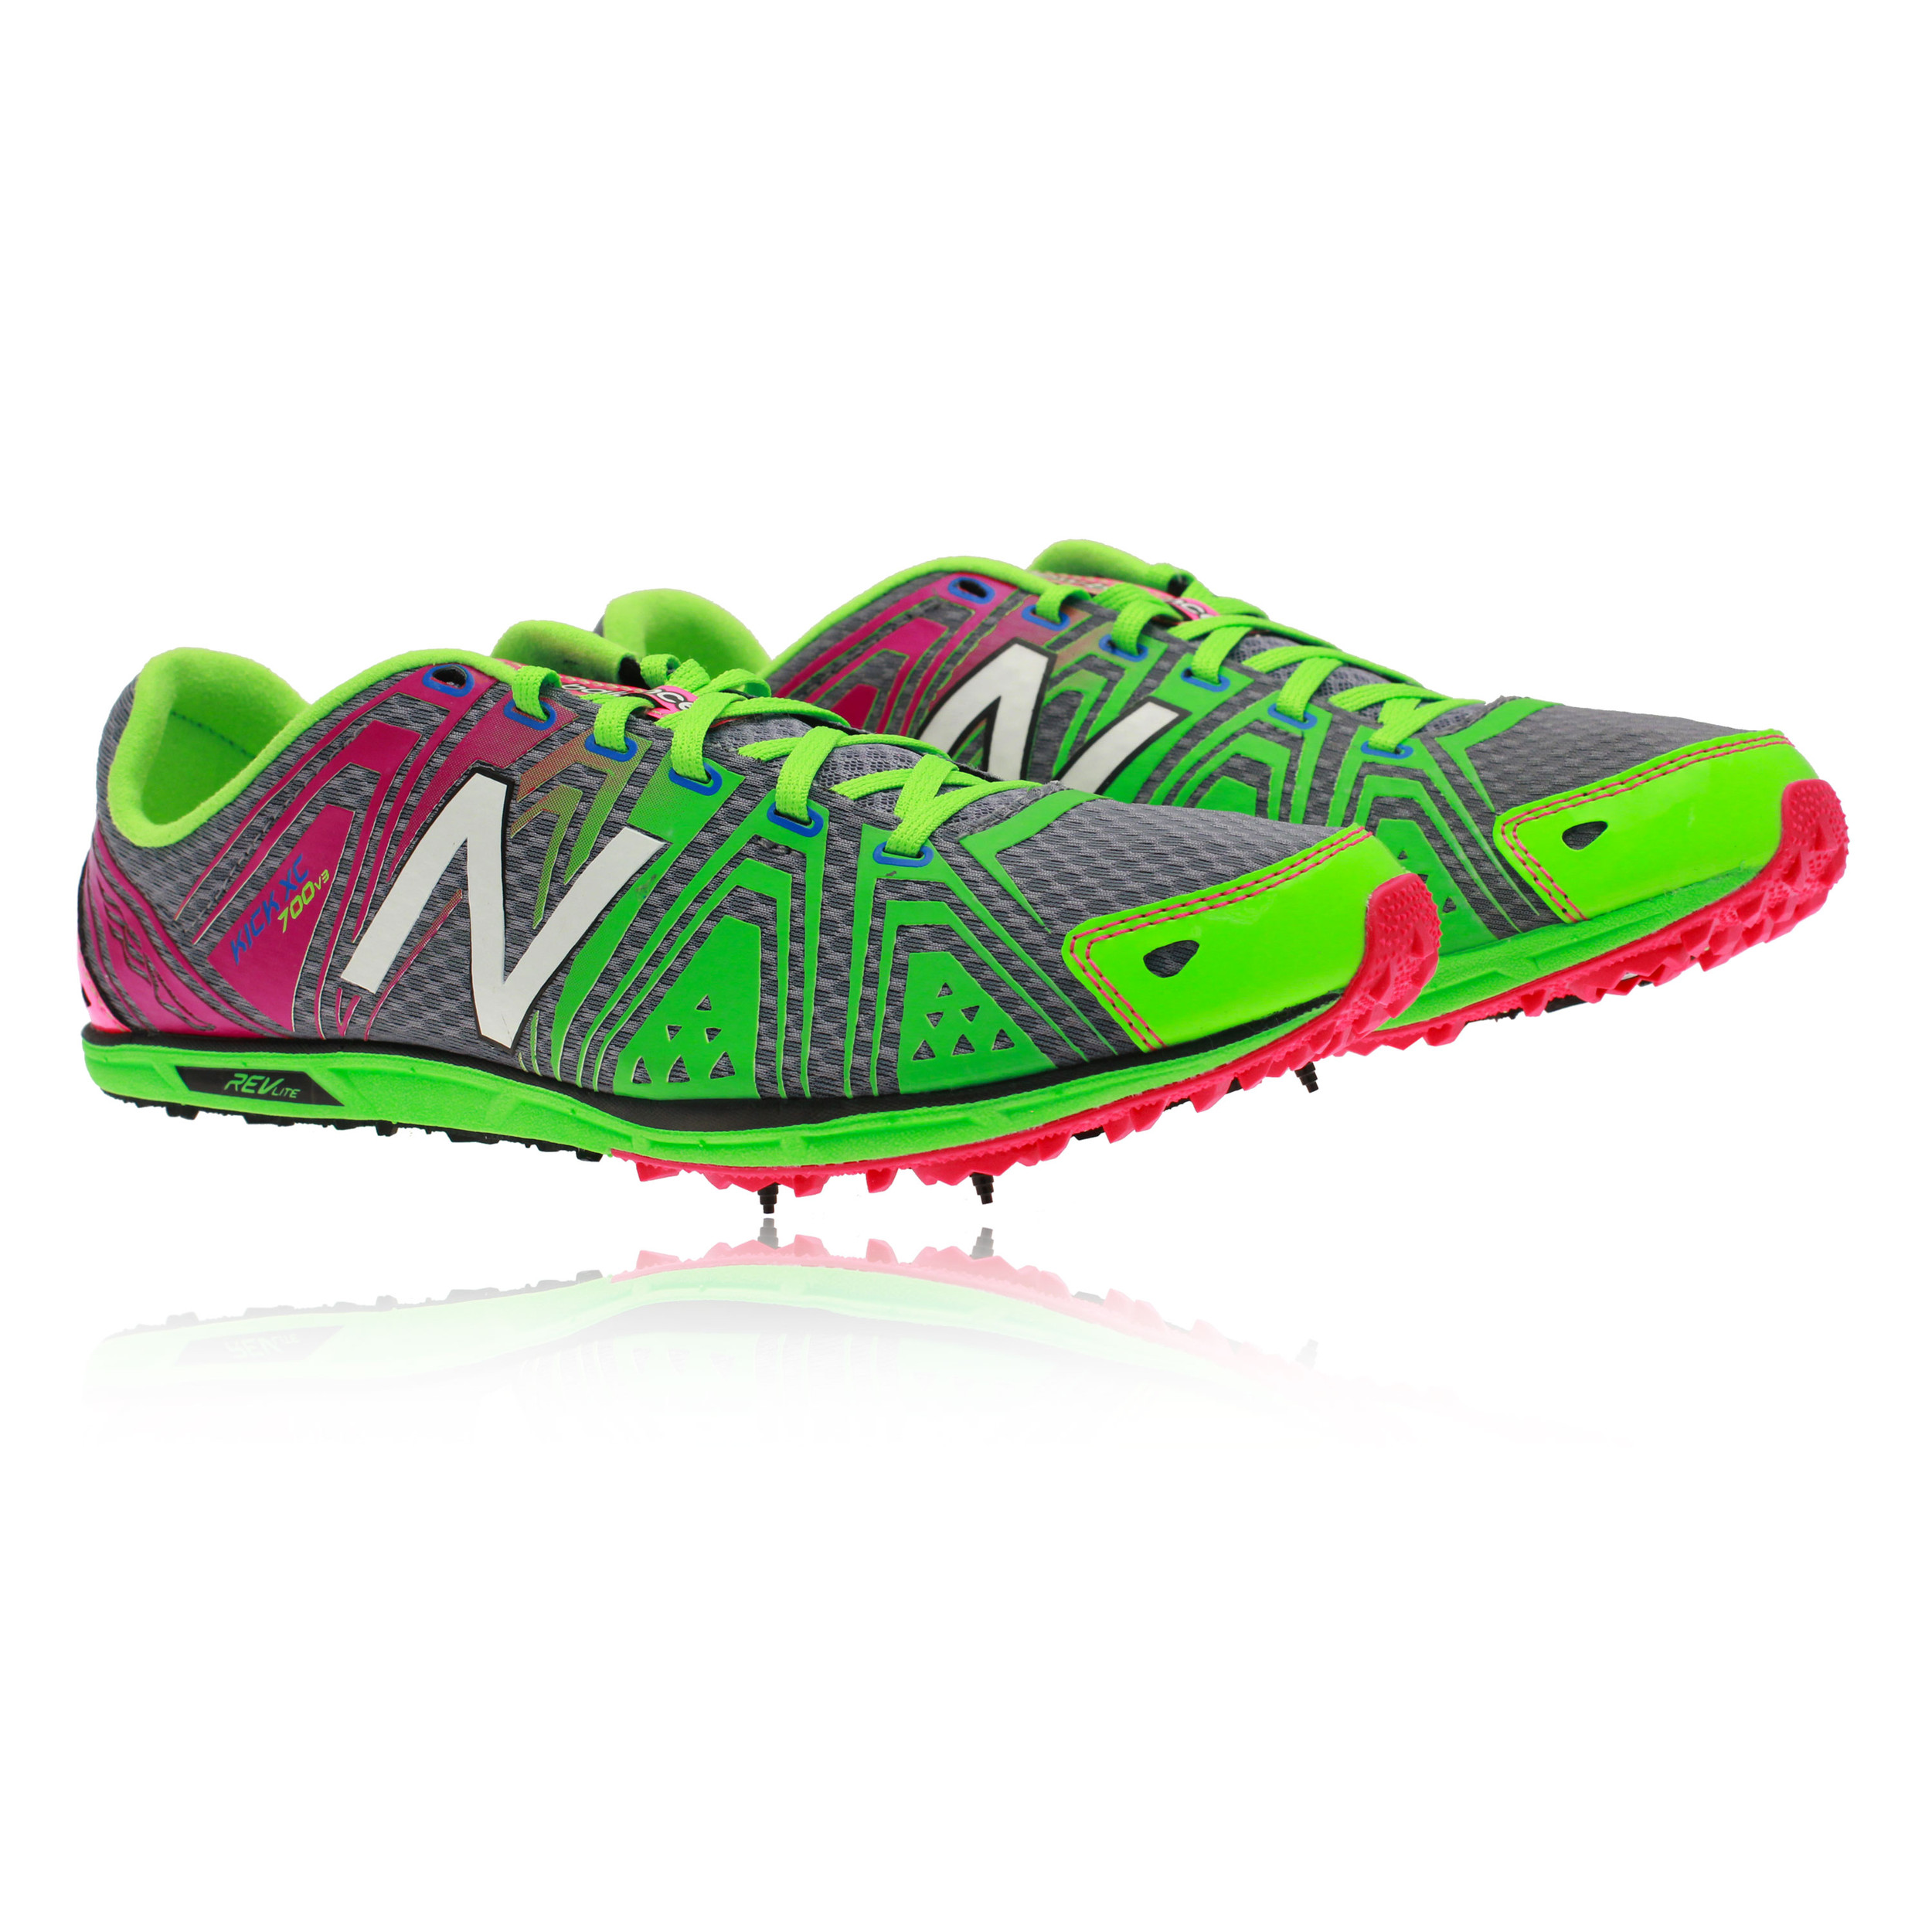 New Balance XC700v3 Women's Cross Country Running Shoes - AW14